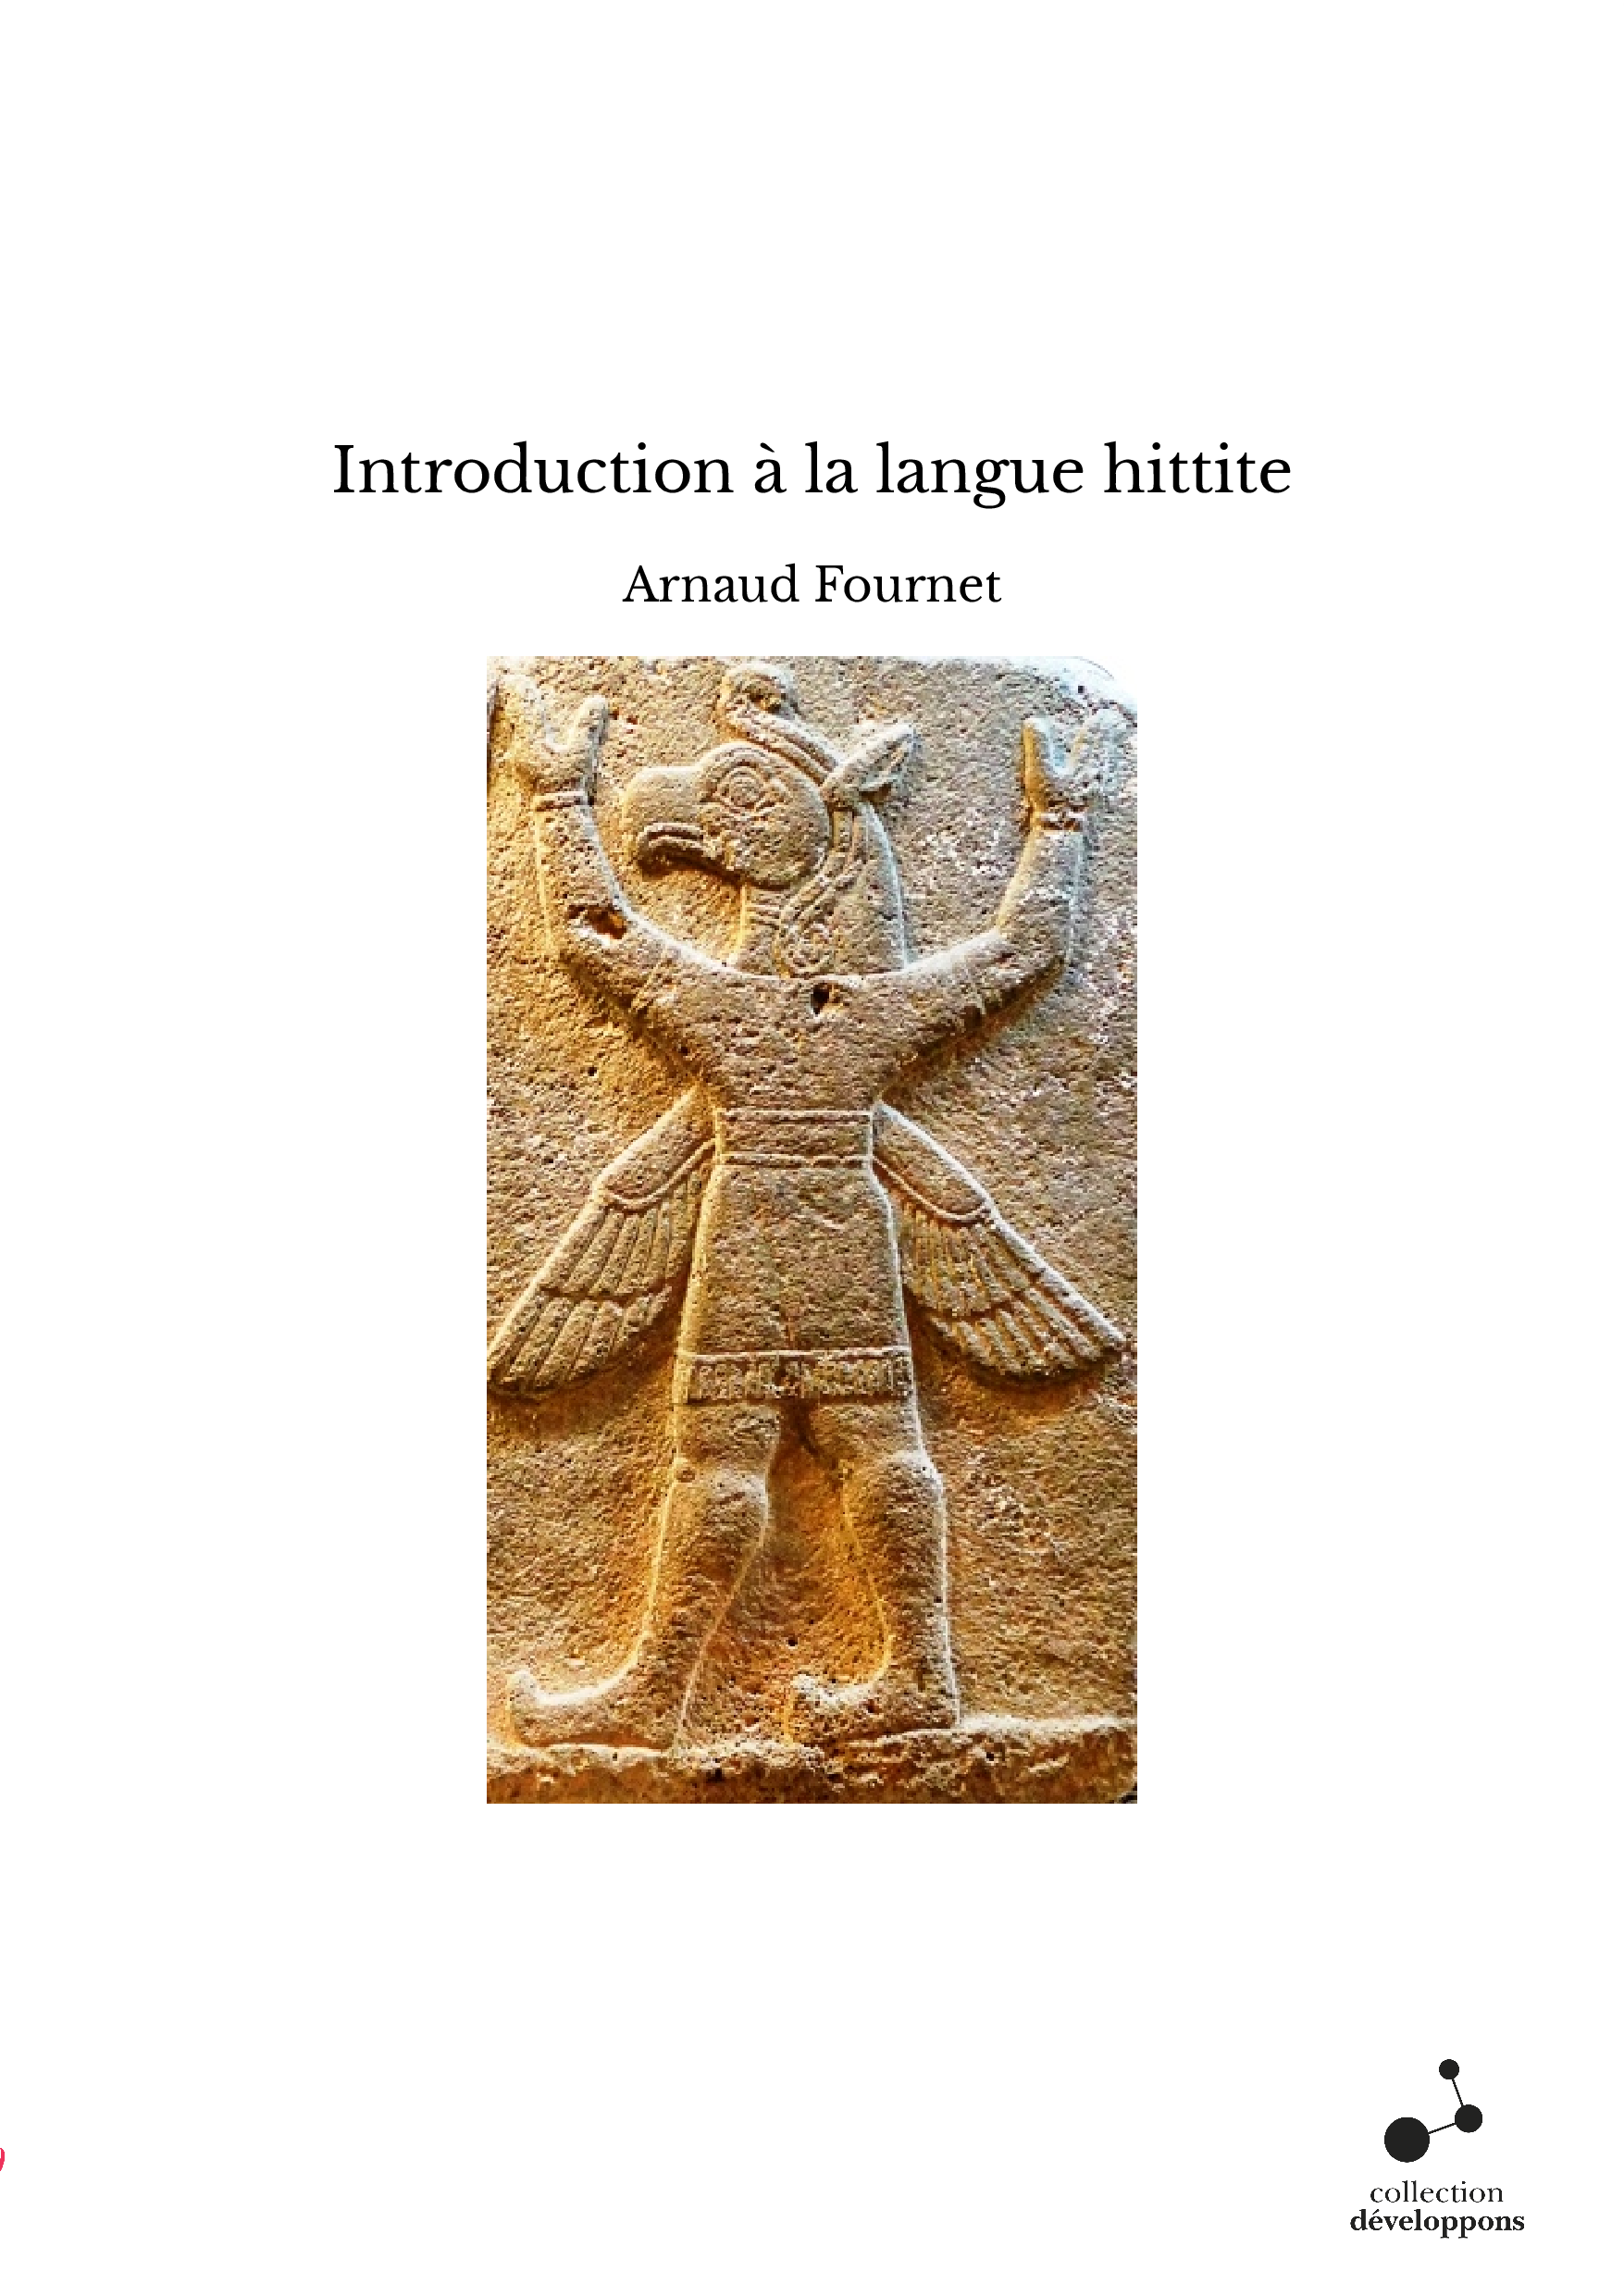 Introduction à la langue hittite